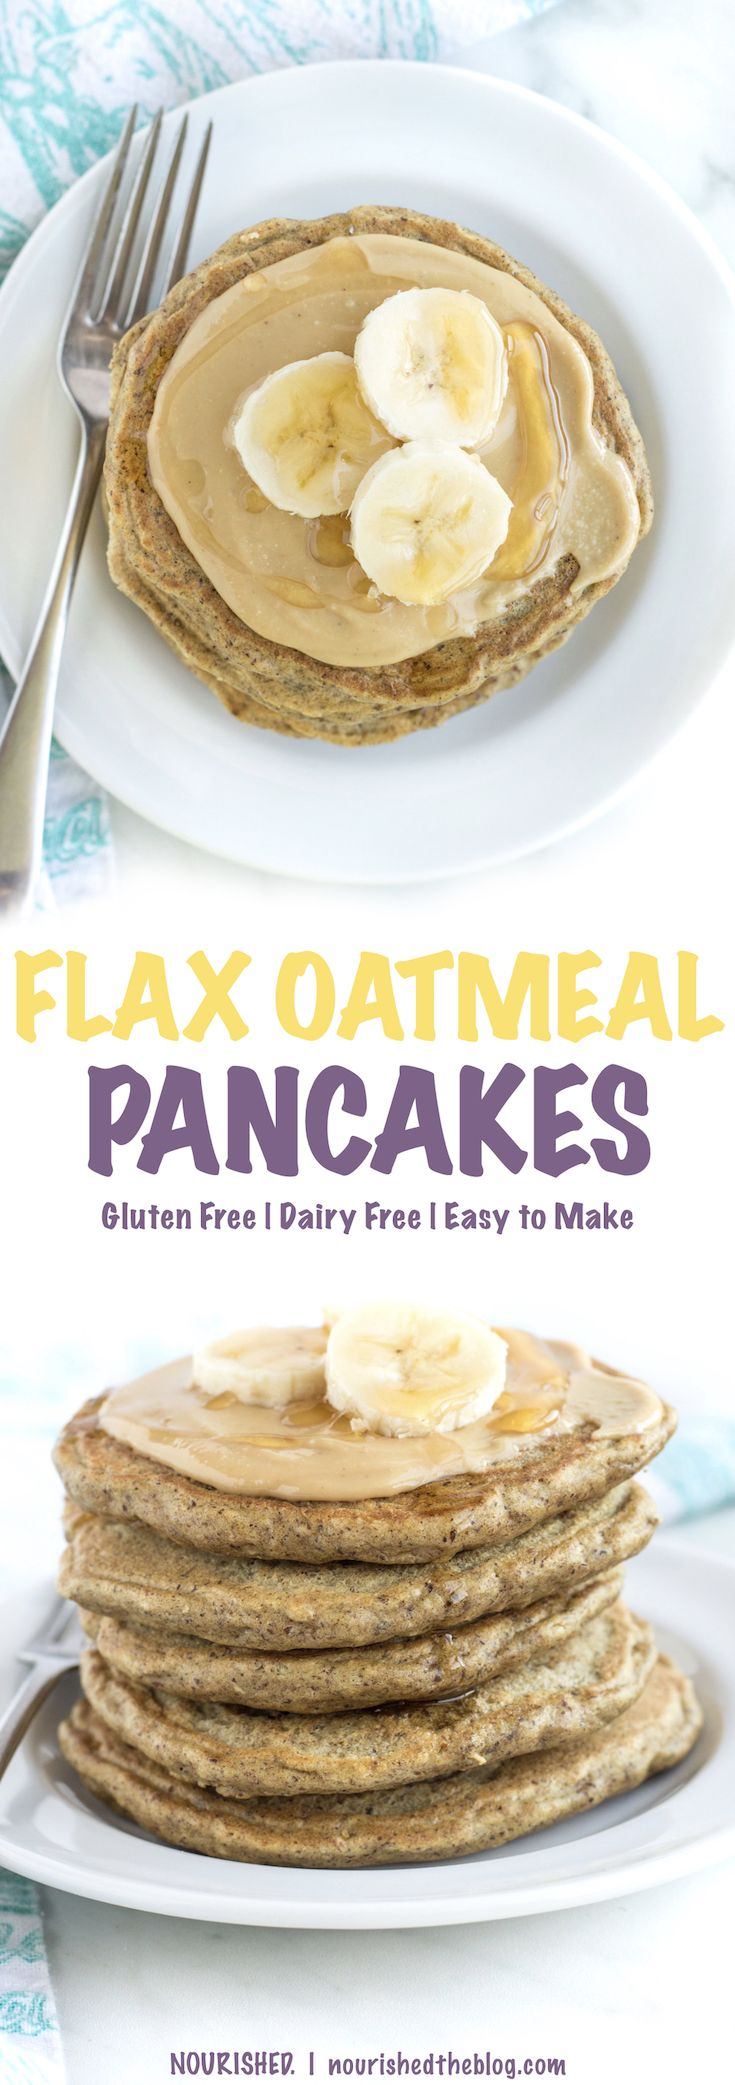 A Gluten Free and Dairy Free pancake recipe that's easy to make with oats, almond flour and ground flaxseeds. A healthy, protein packed and nutritious breakfast to start any day! | Get the recipe here - nourishedtheblog.com | Gluten Free Flax Oatmeal Pancakes